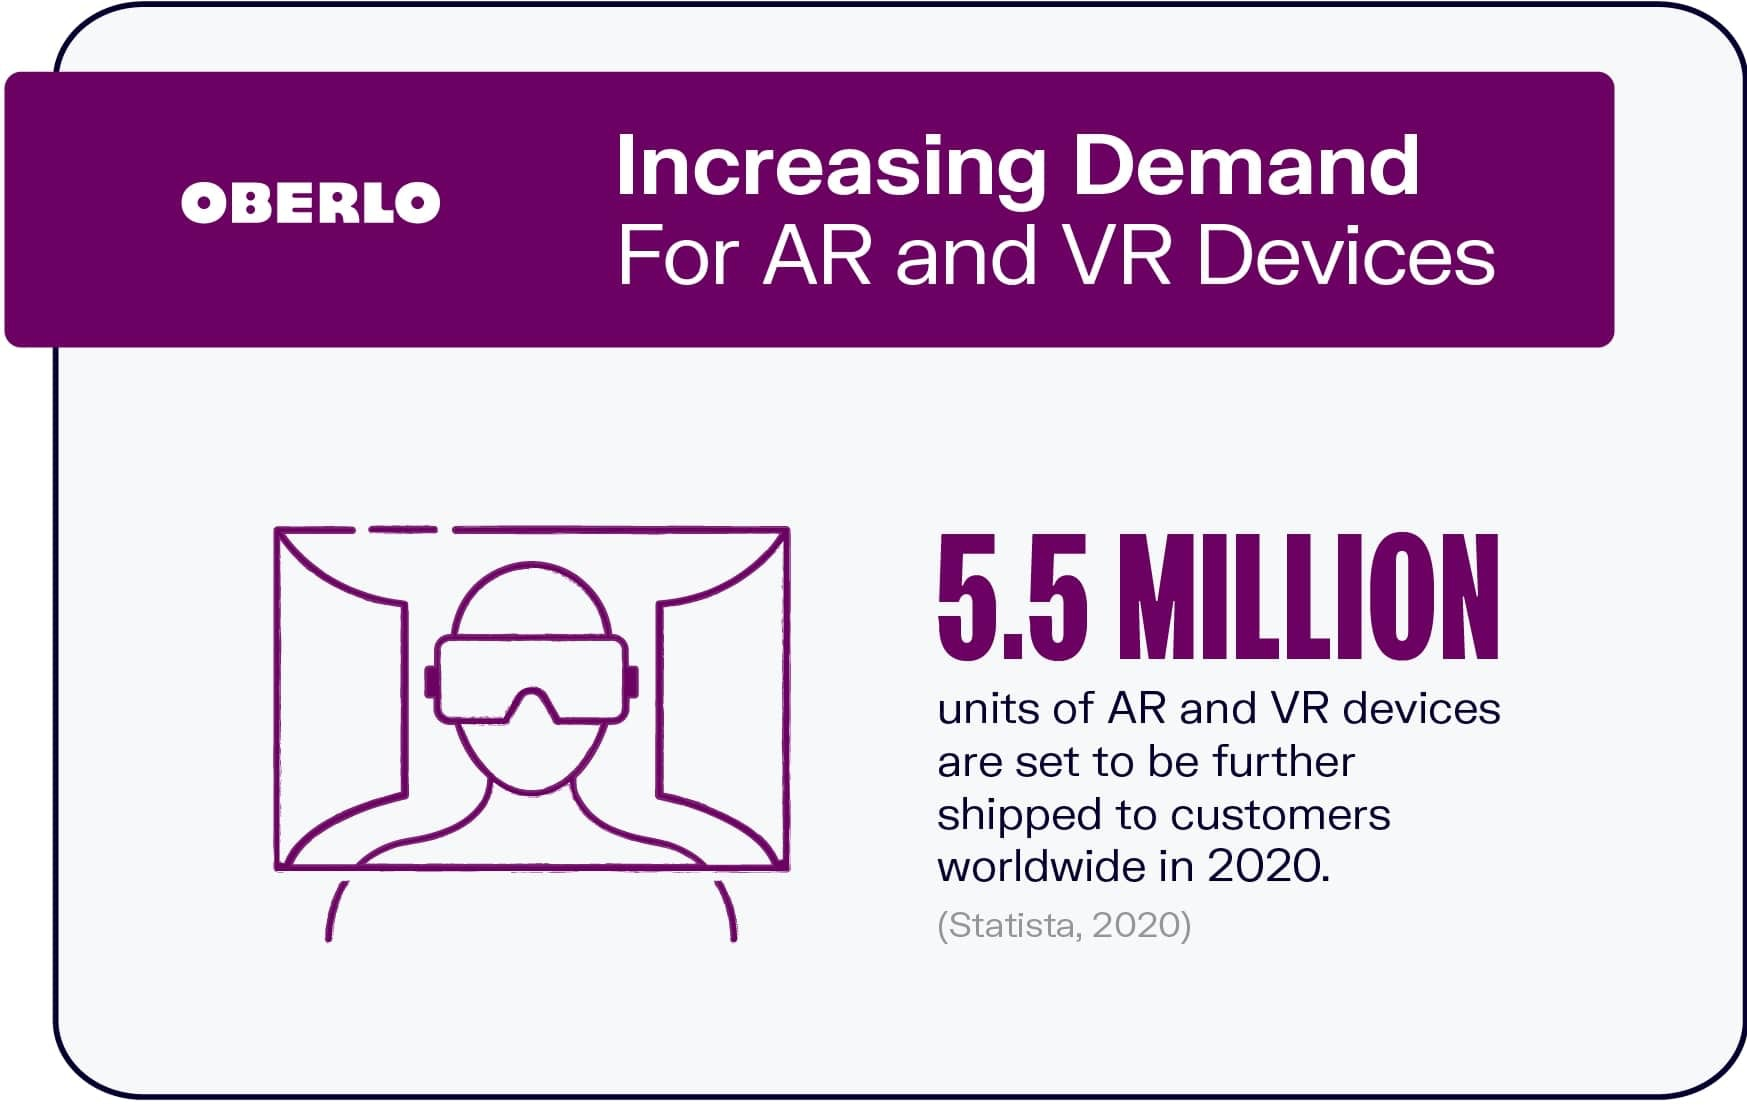 Increasing Demand For AR and VR Devices